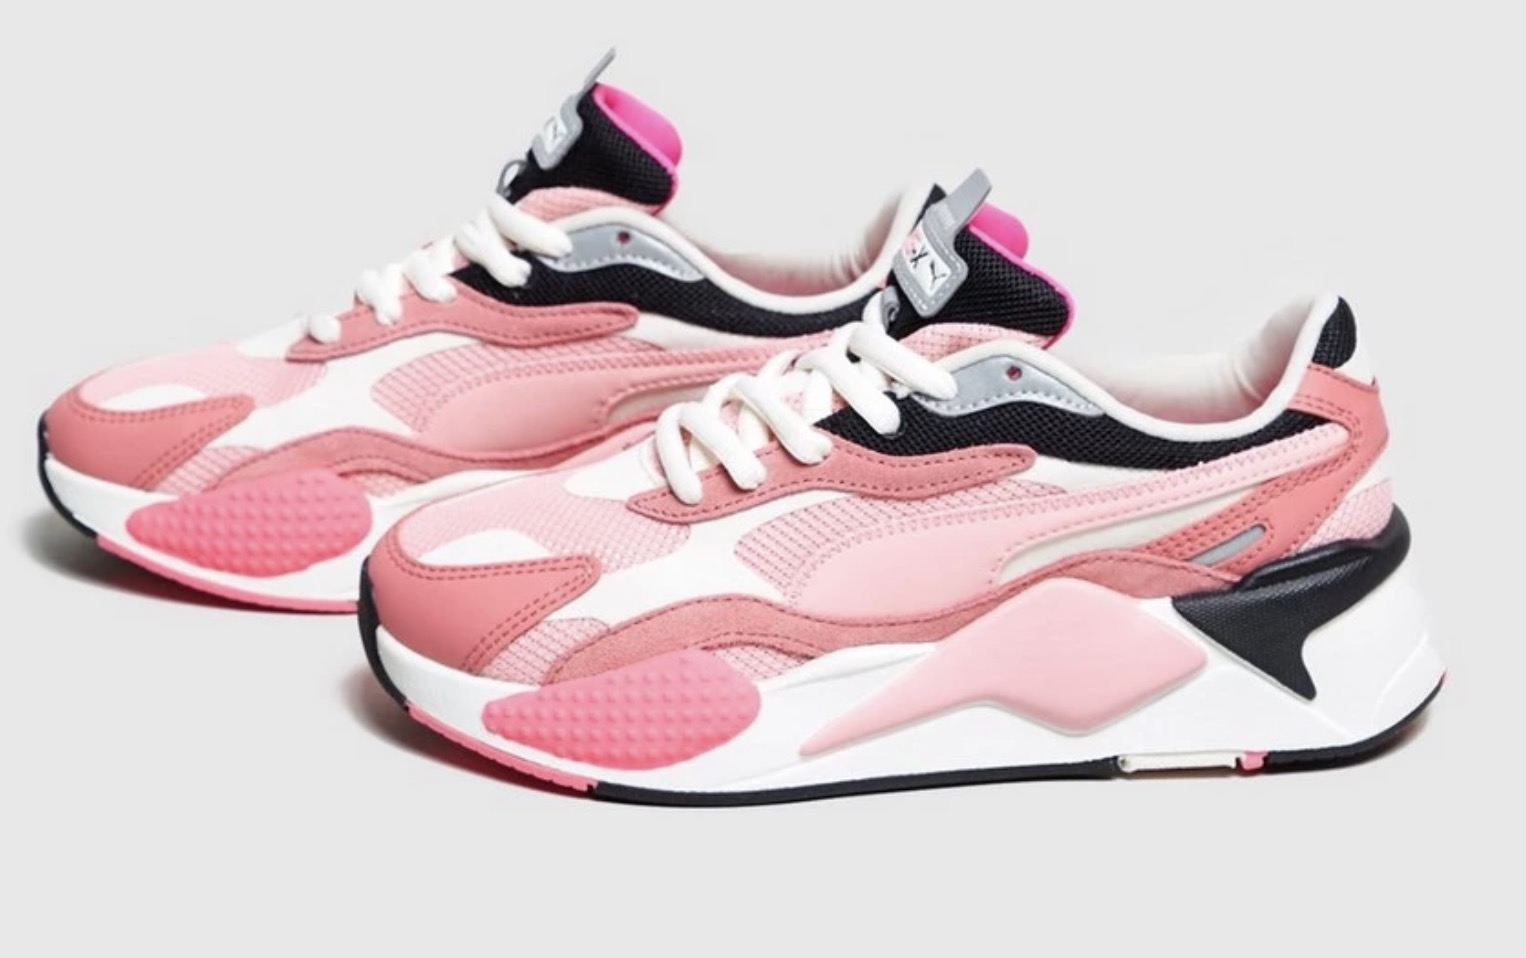 Puma RS-X3 Puzzle Pink | 371570-06 side profile